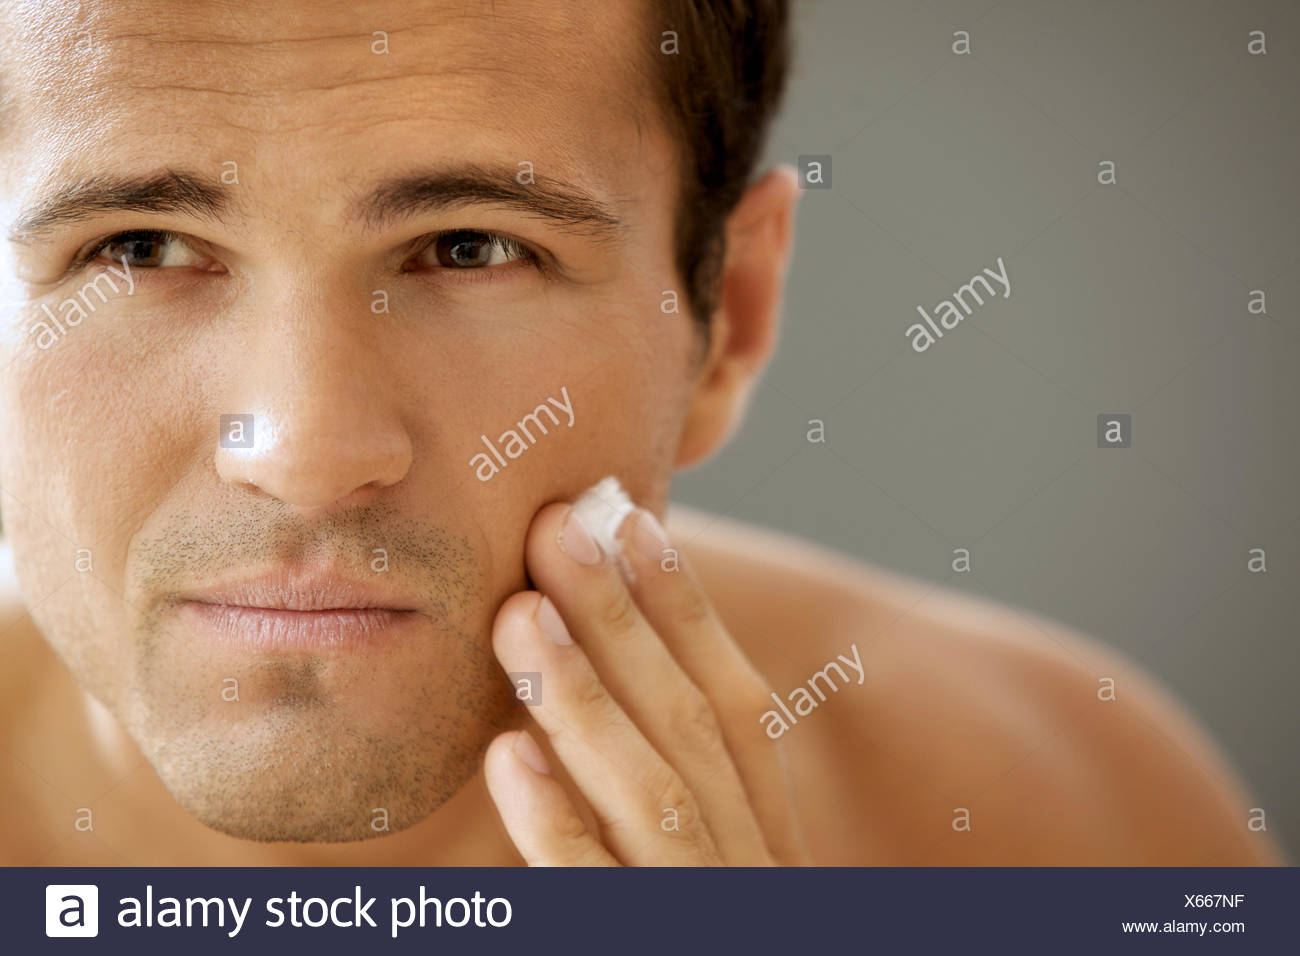 Close-up of young man applying shaving cream - Stock Image